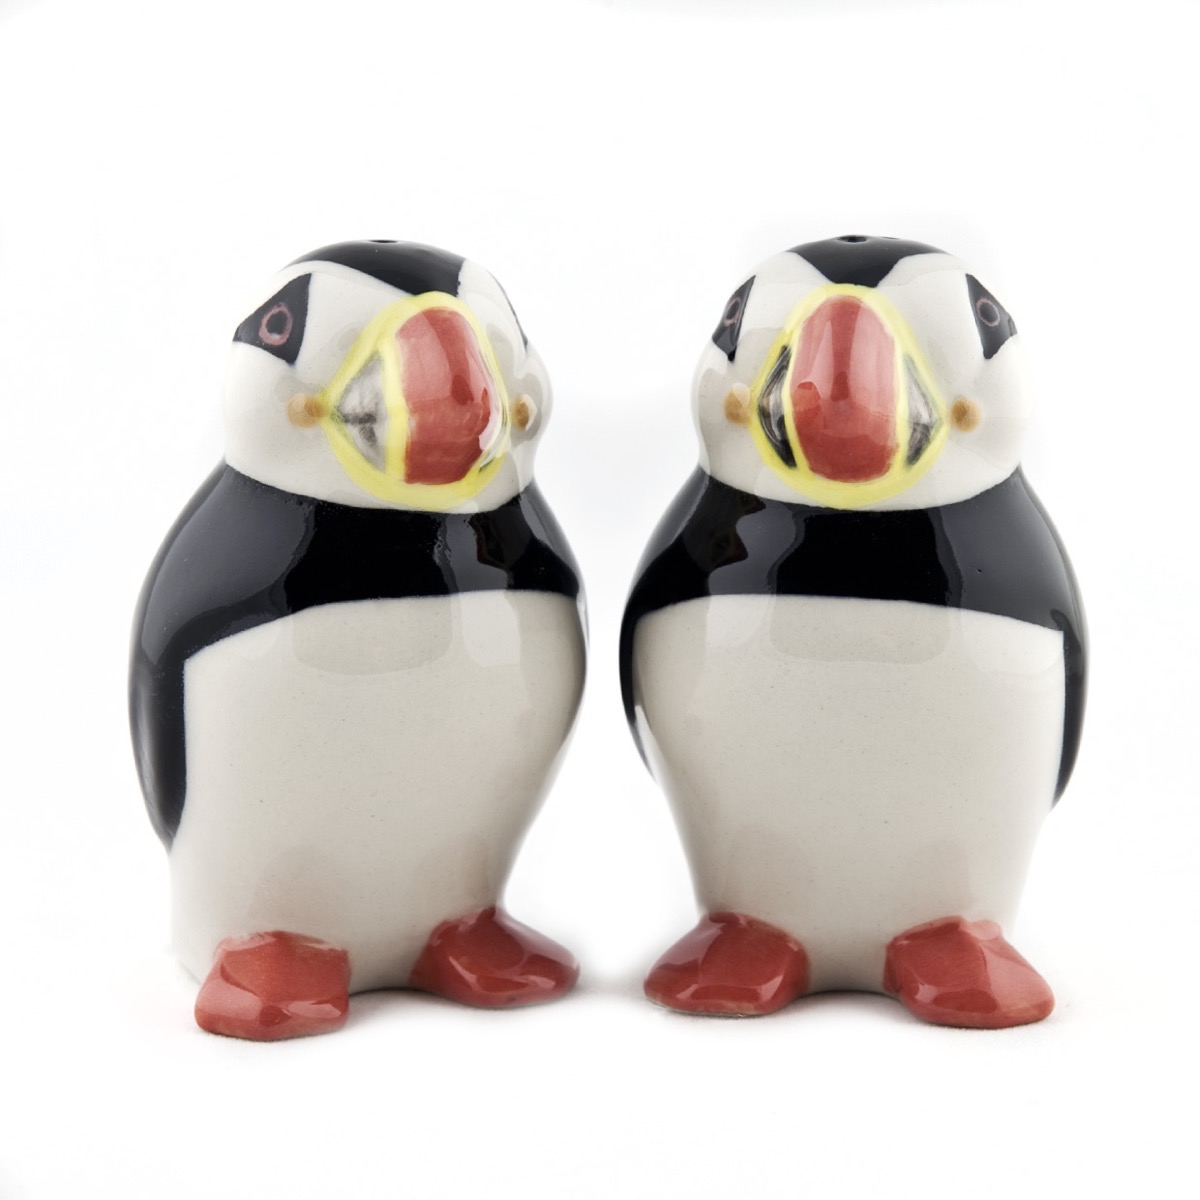 Fantastical Bird Salt And Pepper Shakers. Puffin Salt  Pepper Shakers The Owl Barn Gift Collection